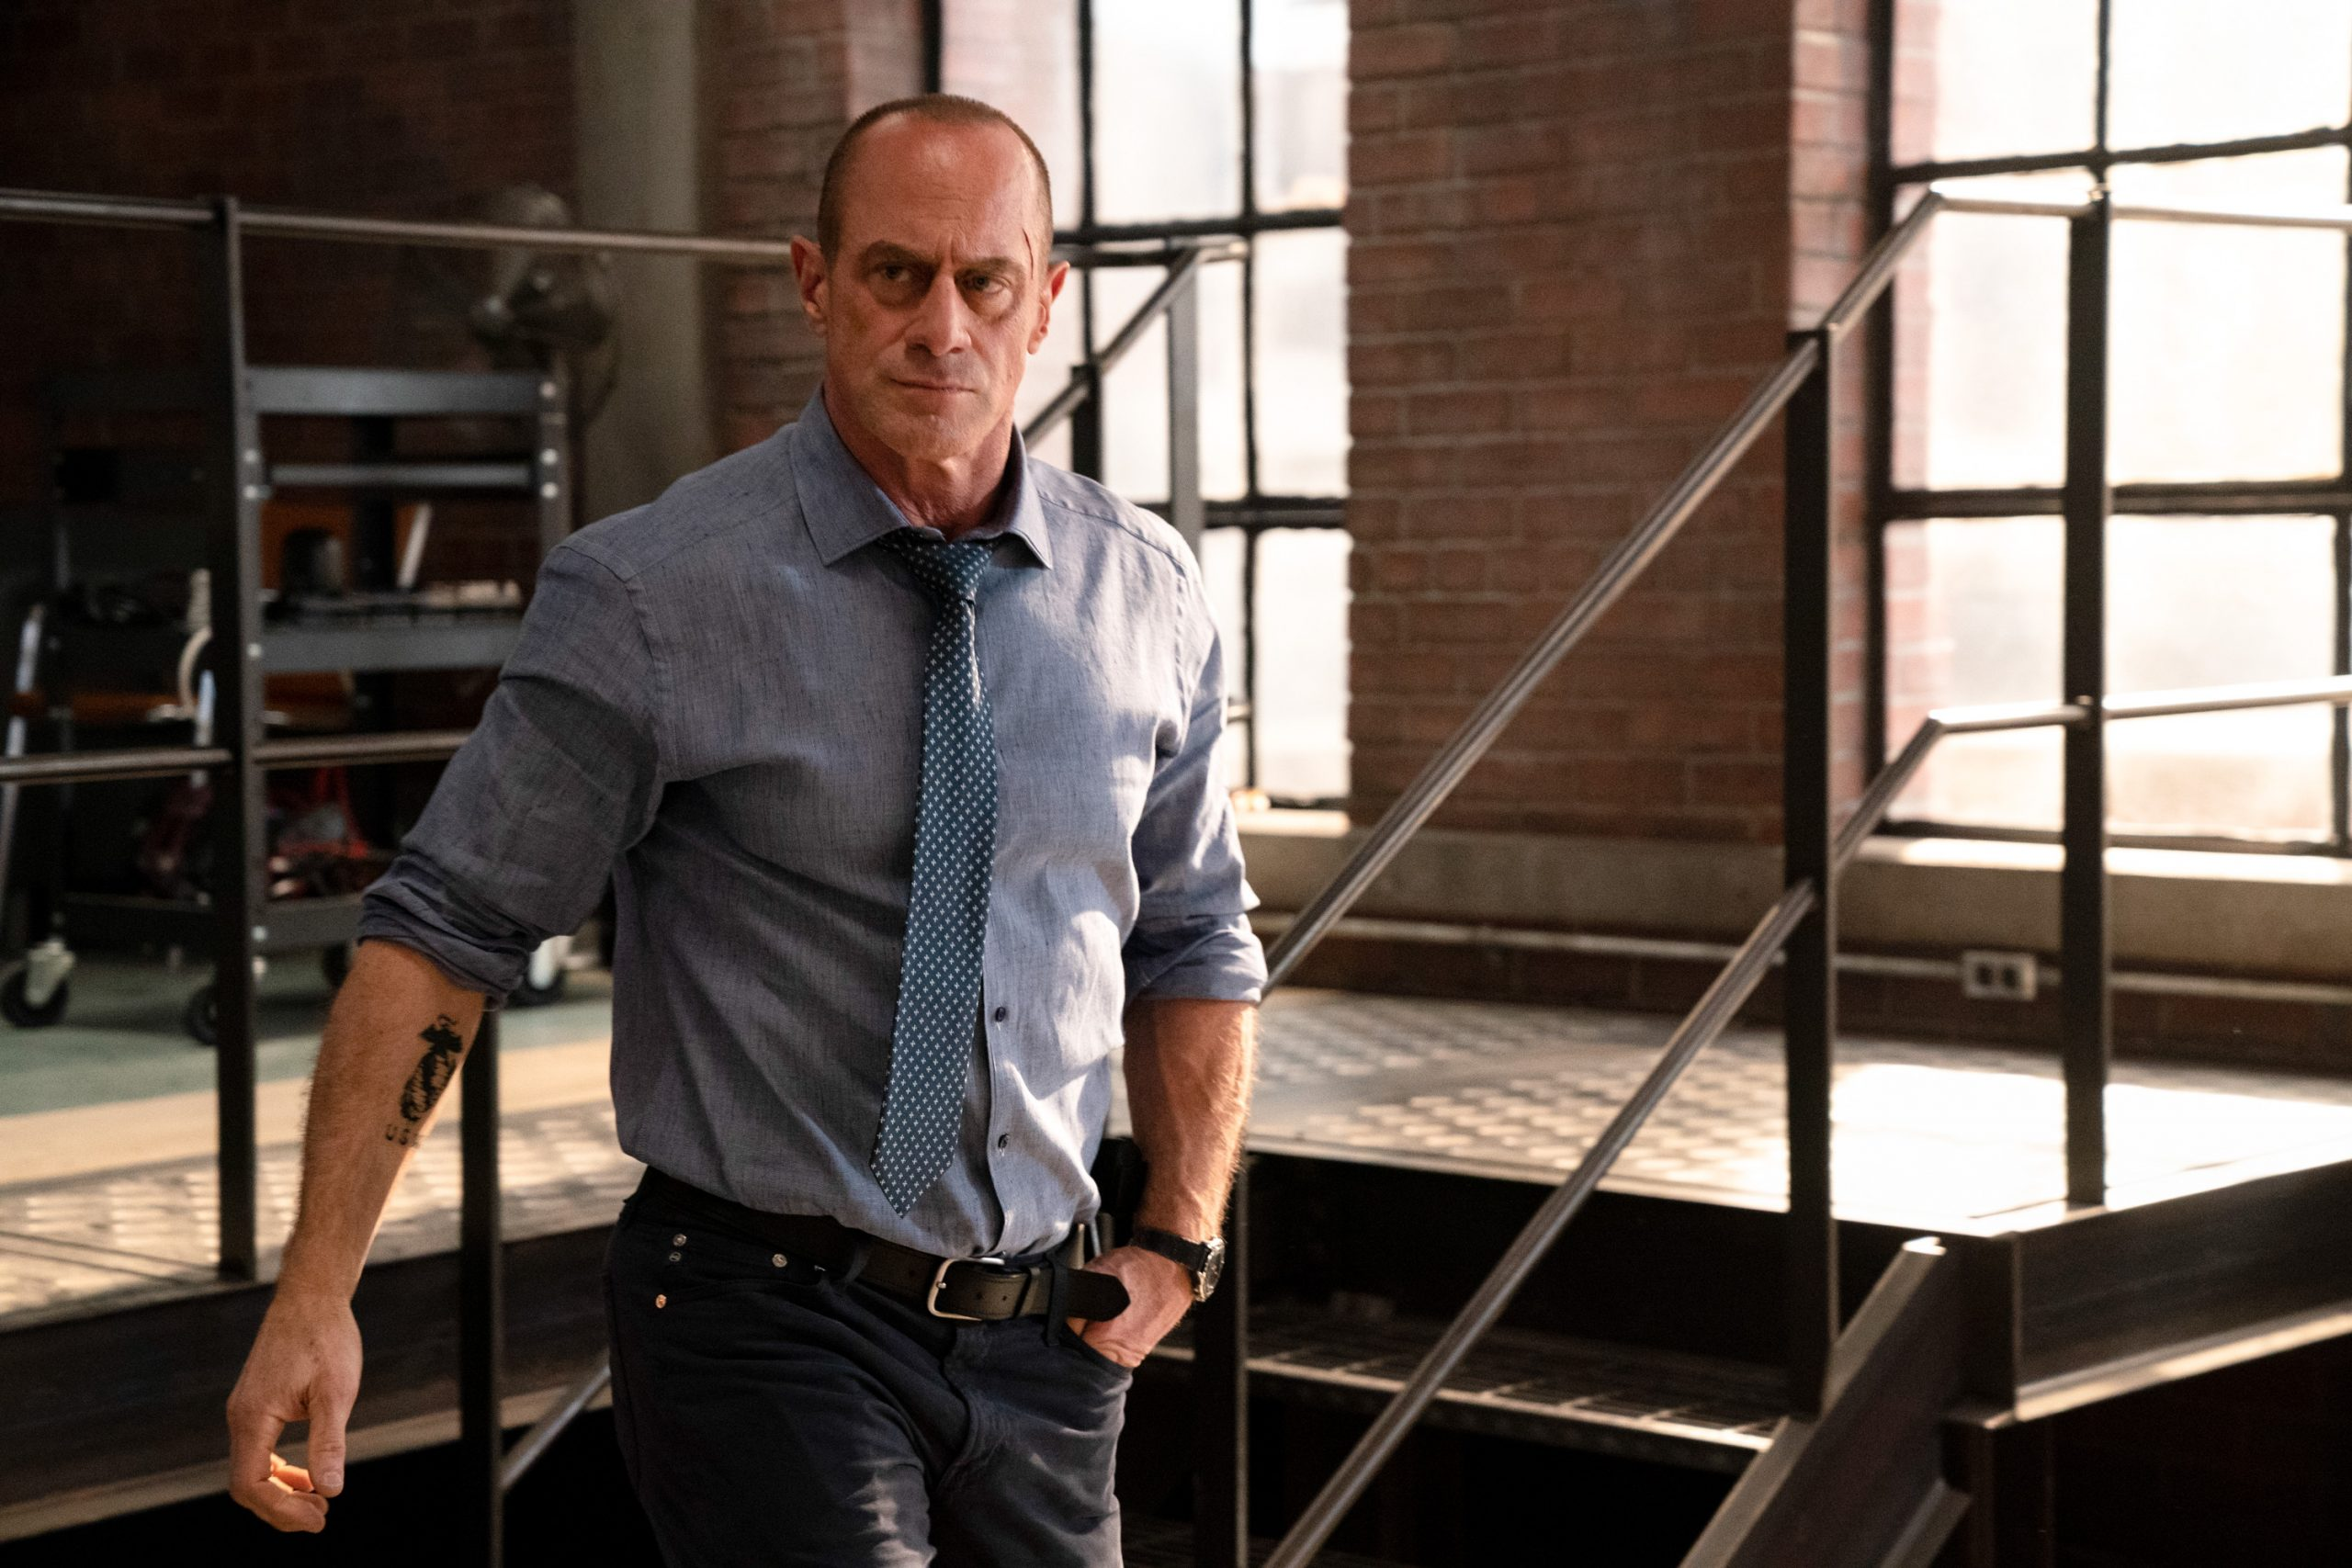 Christopher Meloni is in a blue shirt andplays Detective Elliot Stabler